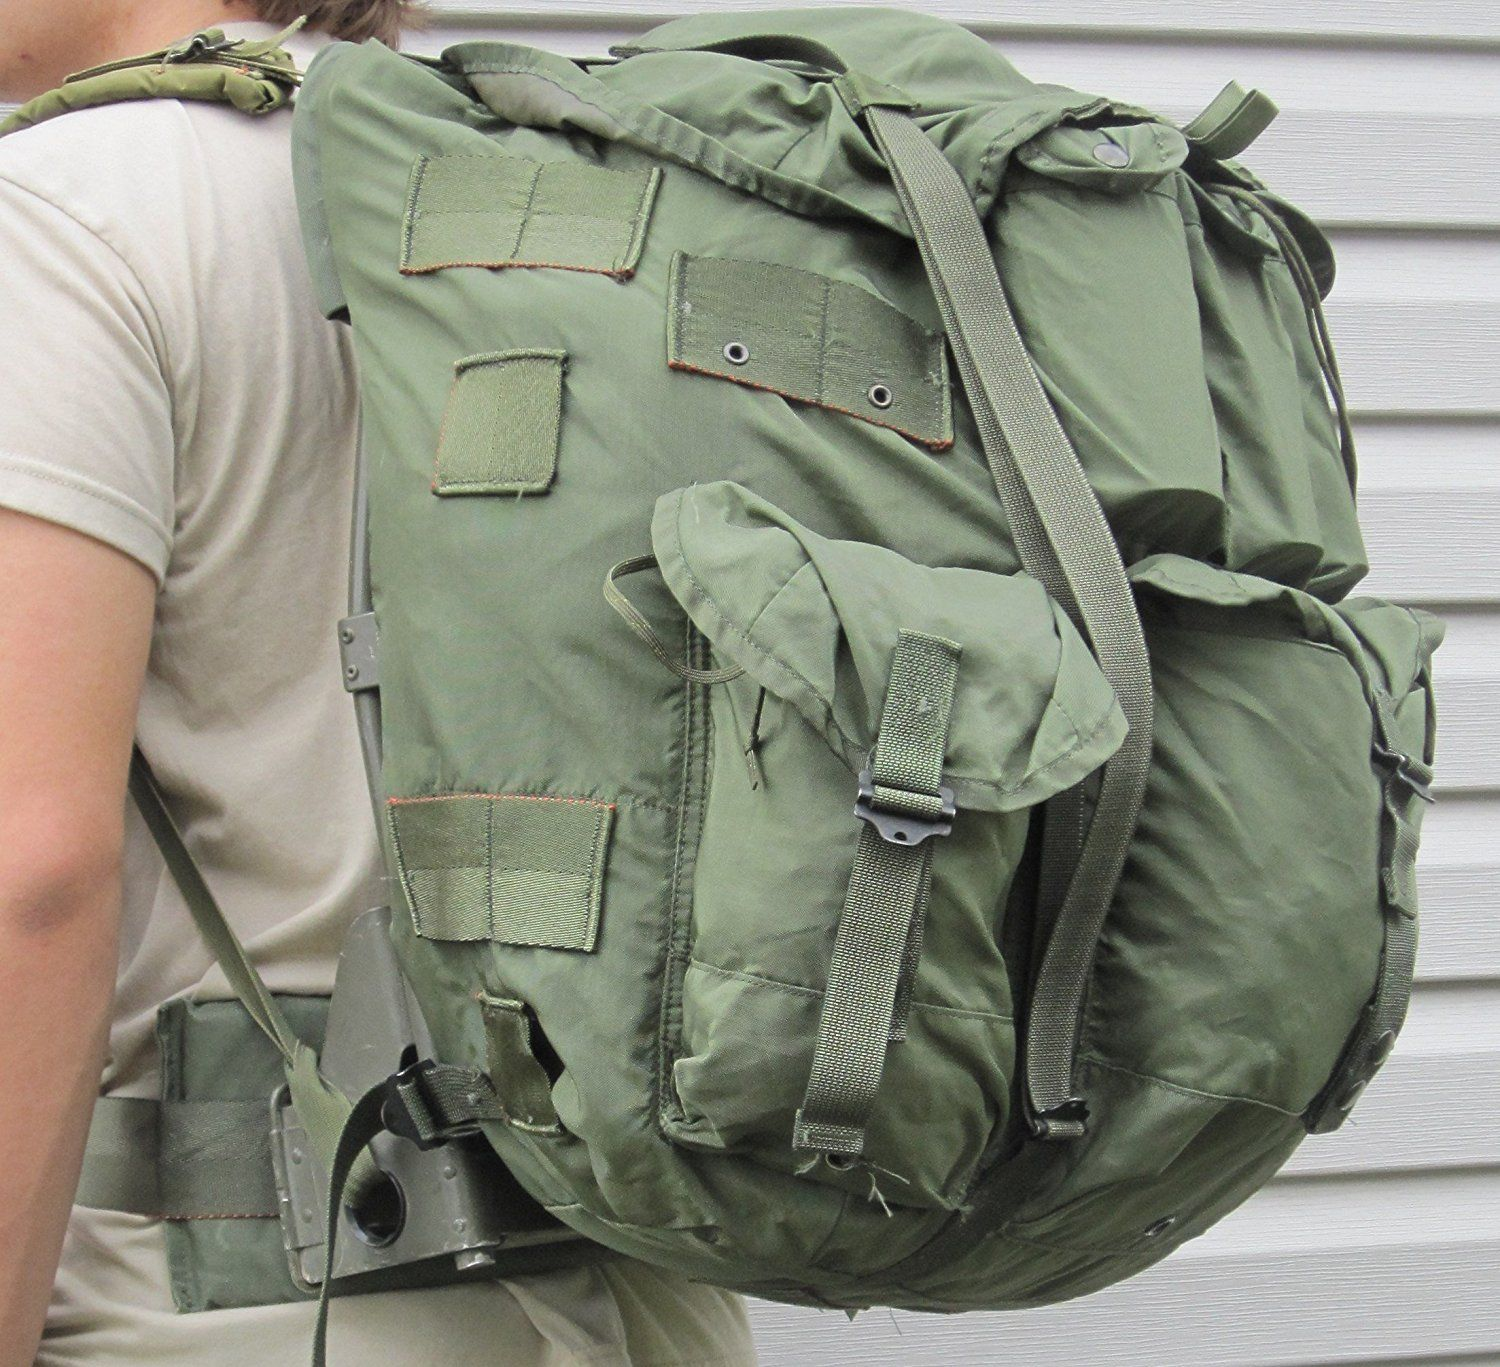 Camping Bags Backpack And Accessories Usgi Military Large Olive Drab Alice Pack W Straps Frame Pad Complete New Military Camping Bag Outdoor Backpacks